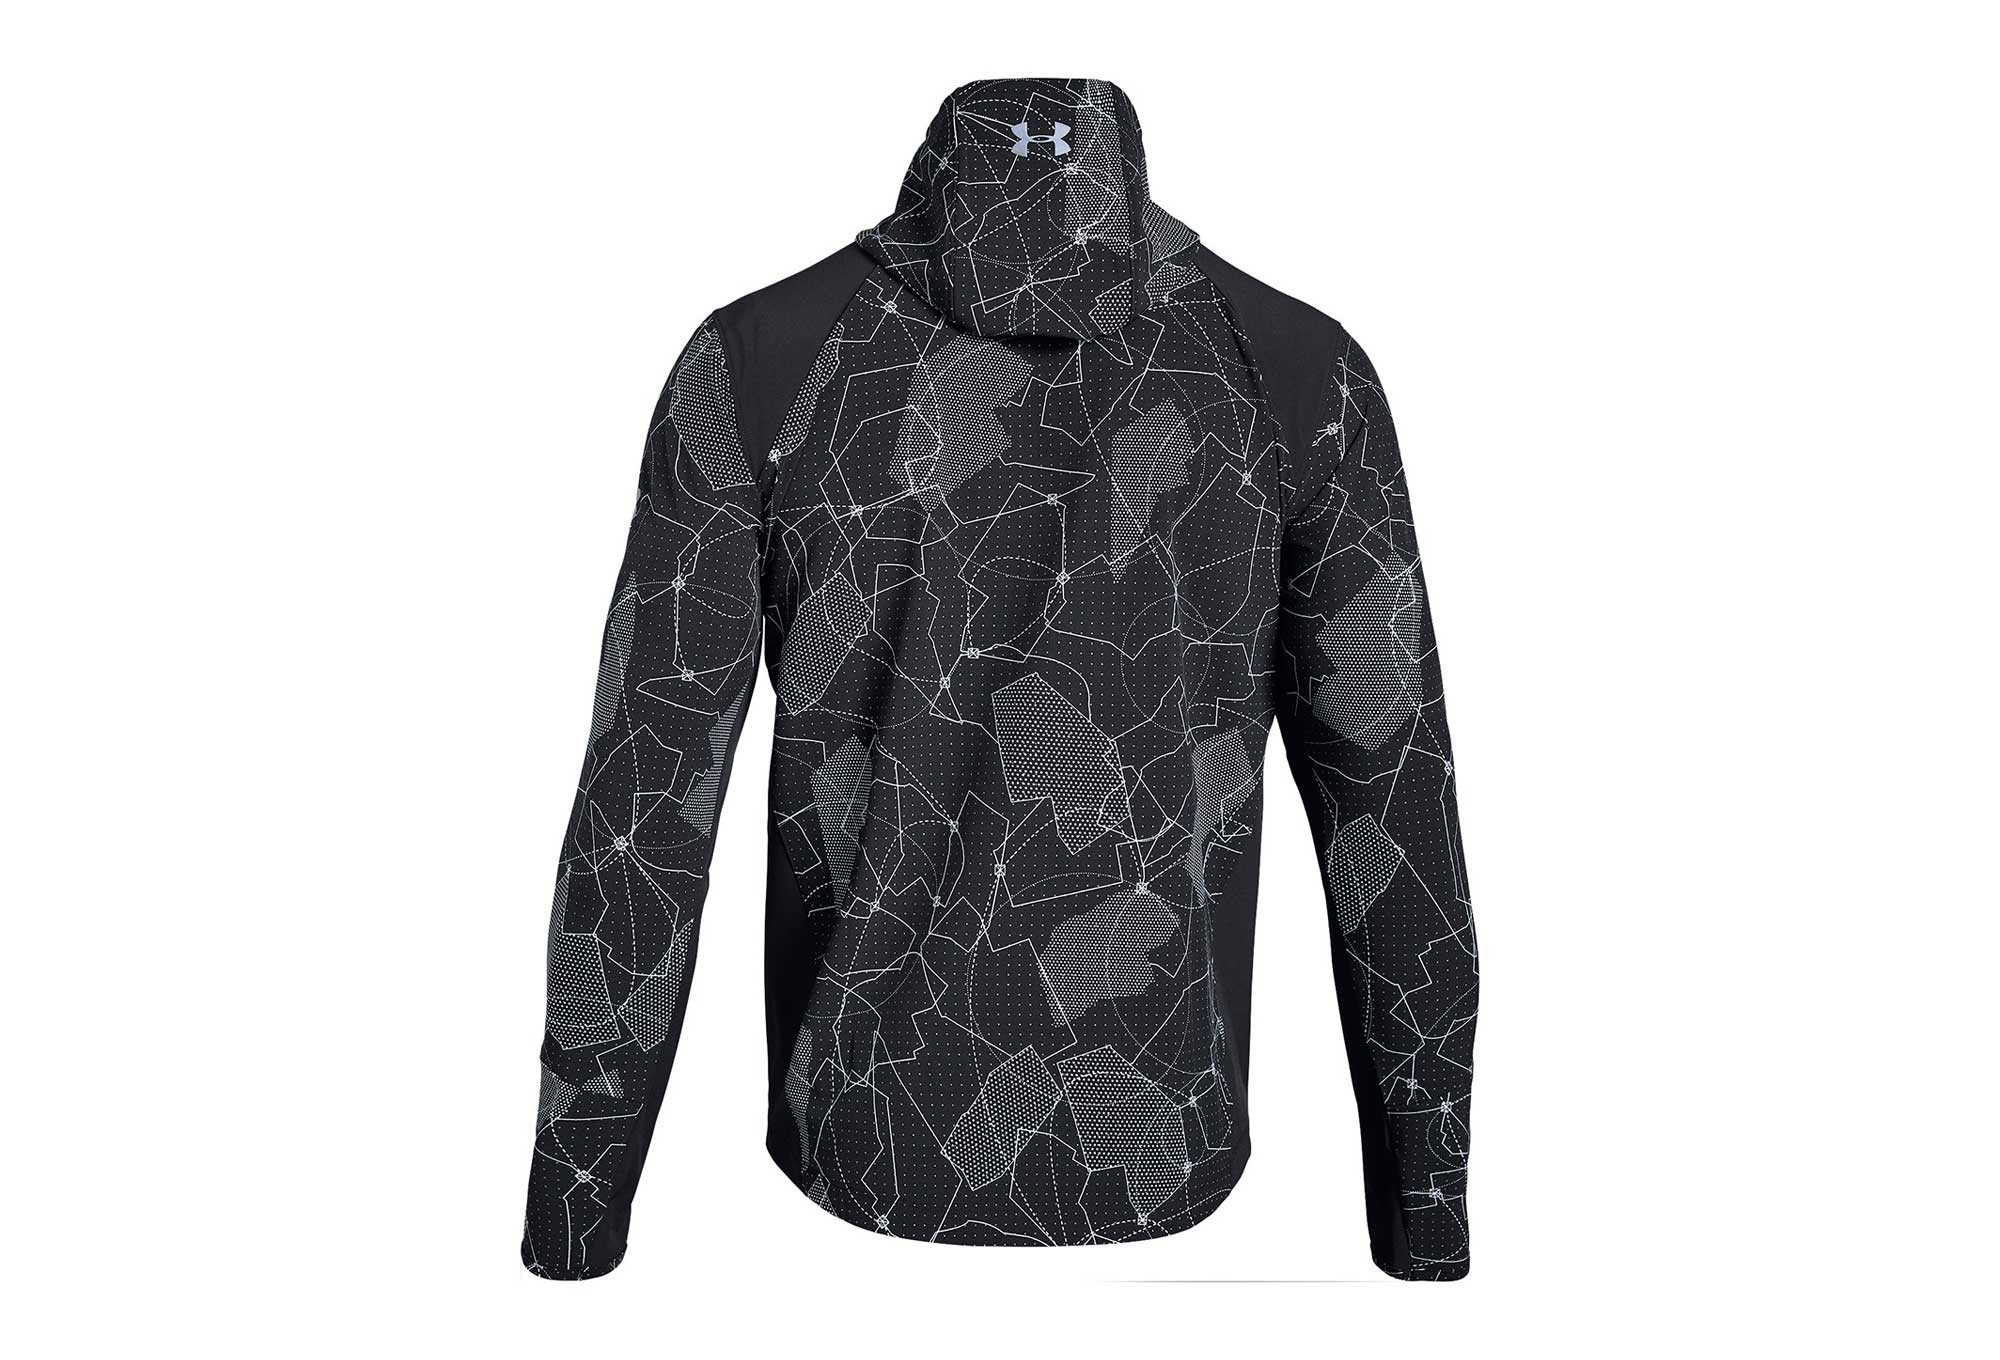 Under Armour Outrun The Storm Printed Water Resistant Jacket Black